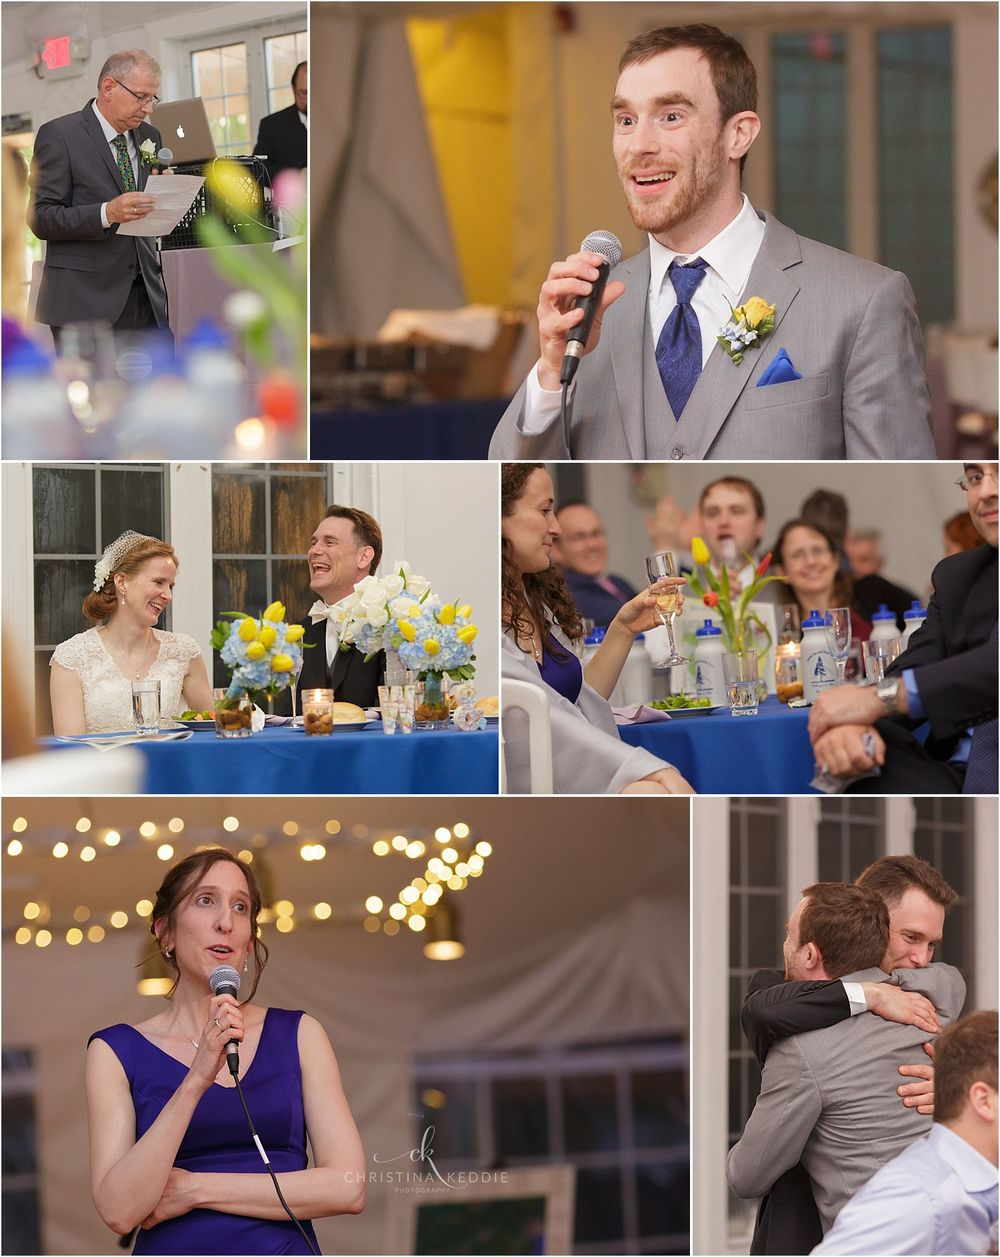 Wedding reception toasts and hugs | Christina Keddie Photography | Voorhees NJ wedding photographer